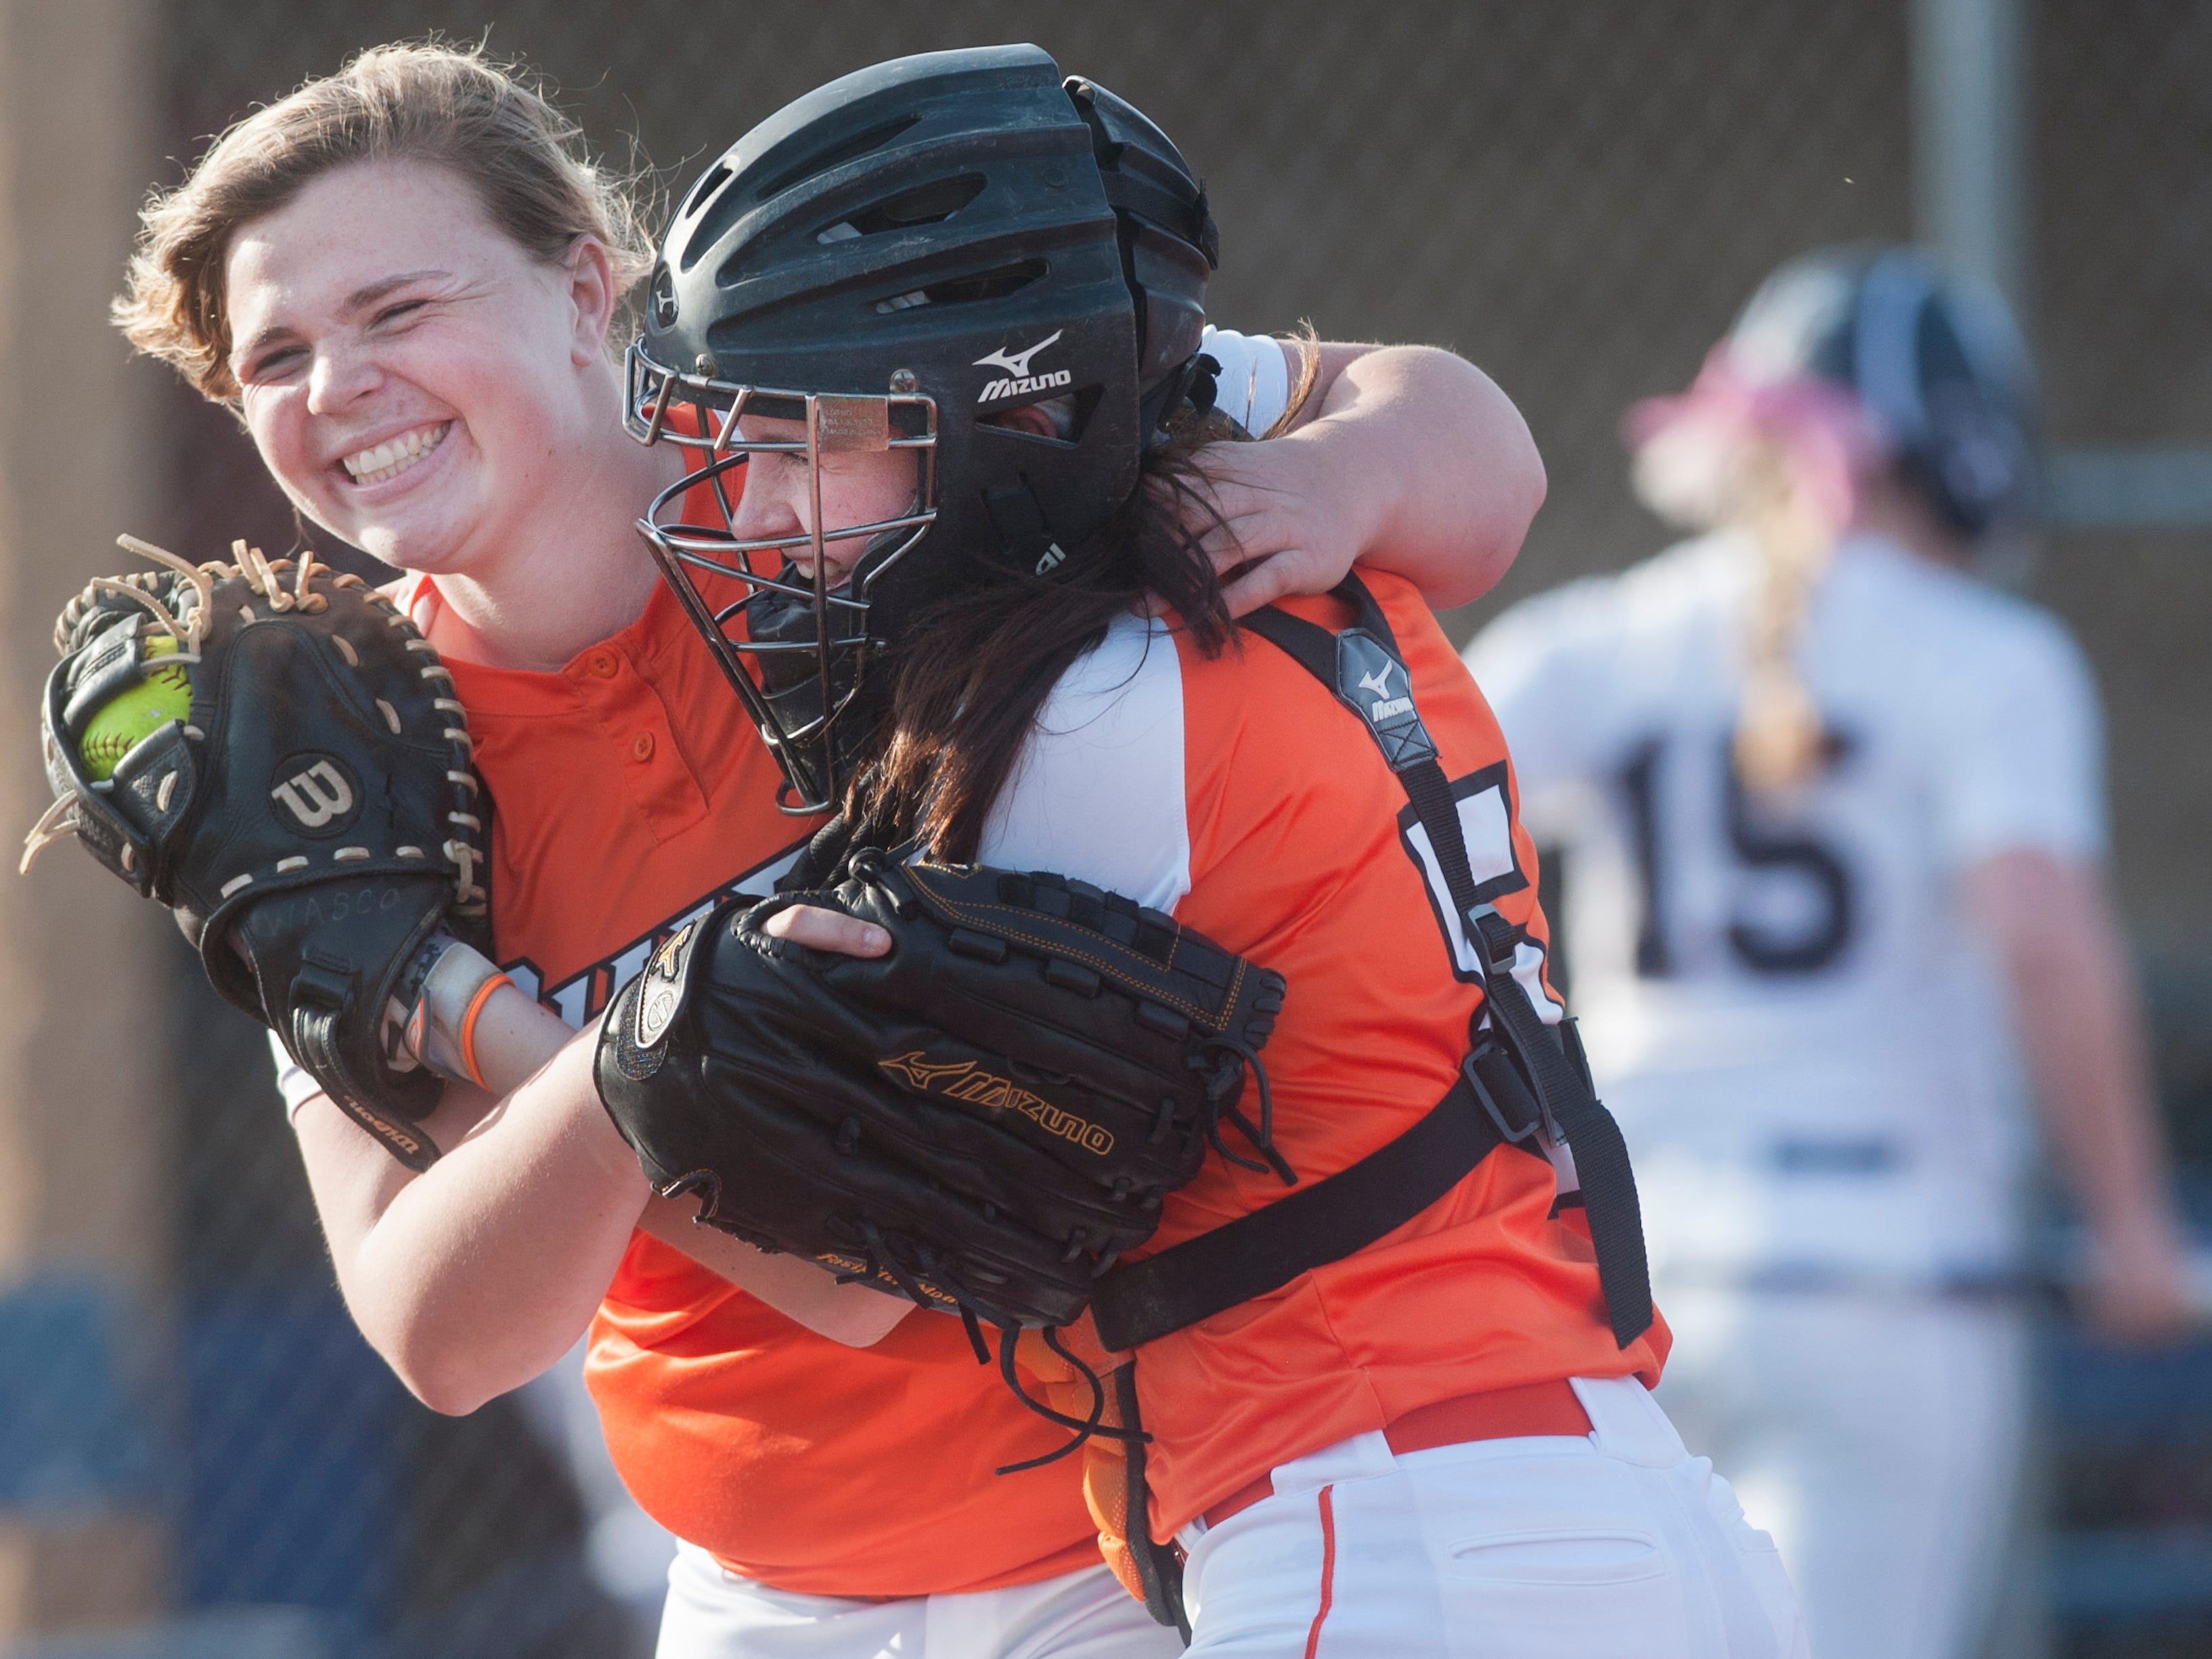 Cherokee pitcher Abbey Scarengelli, left, celebrates with Cherokee catcher Brooke Wasco at the end of Mondays softball game between Cherokee and Eastern, played at Eastern High School in Voorhees. Cherokee won 5-4. 04.14.15